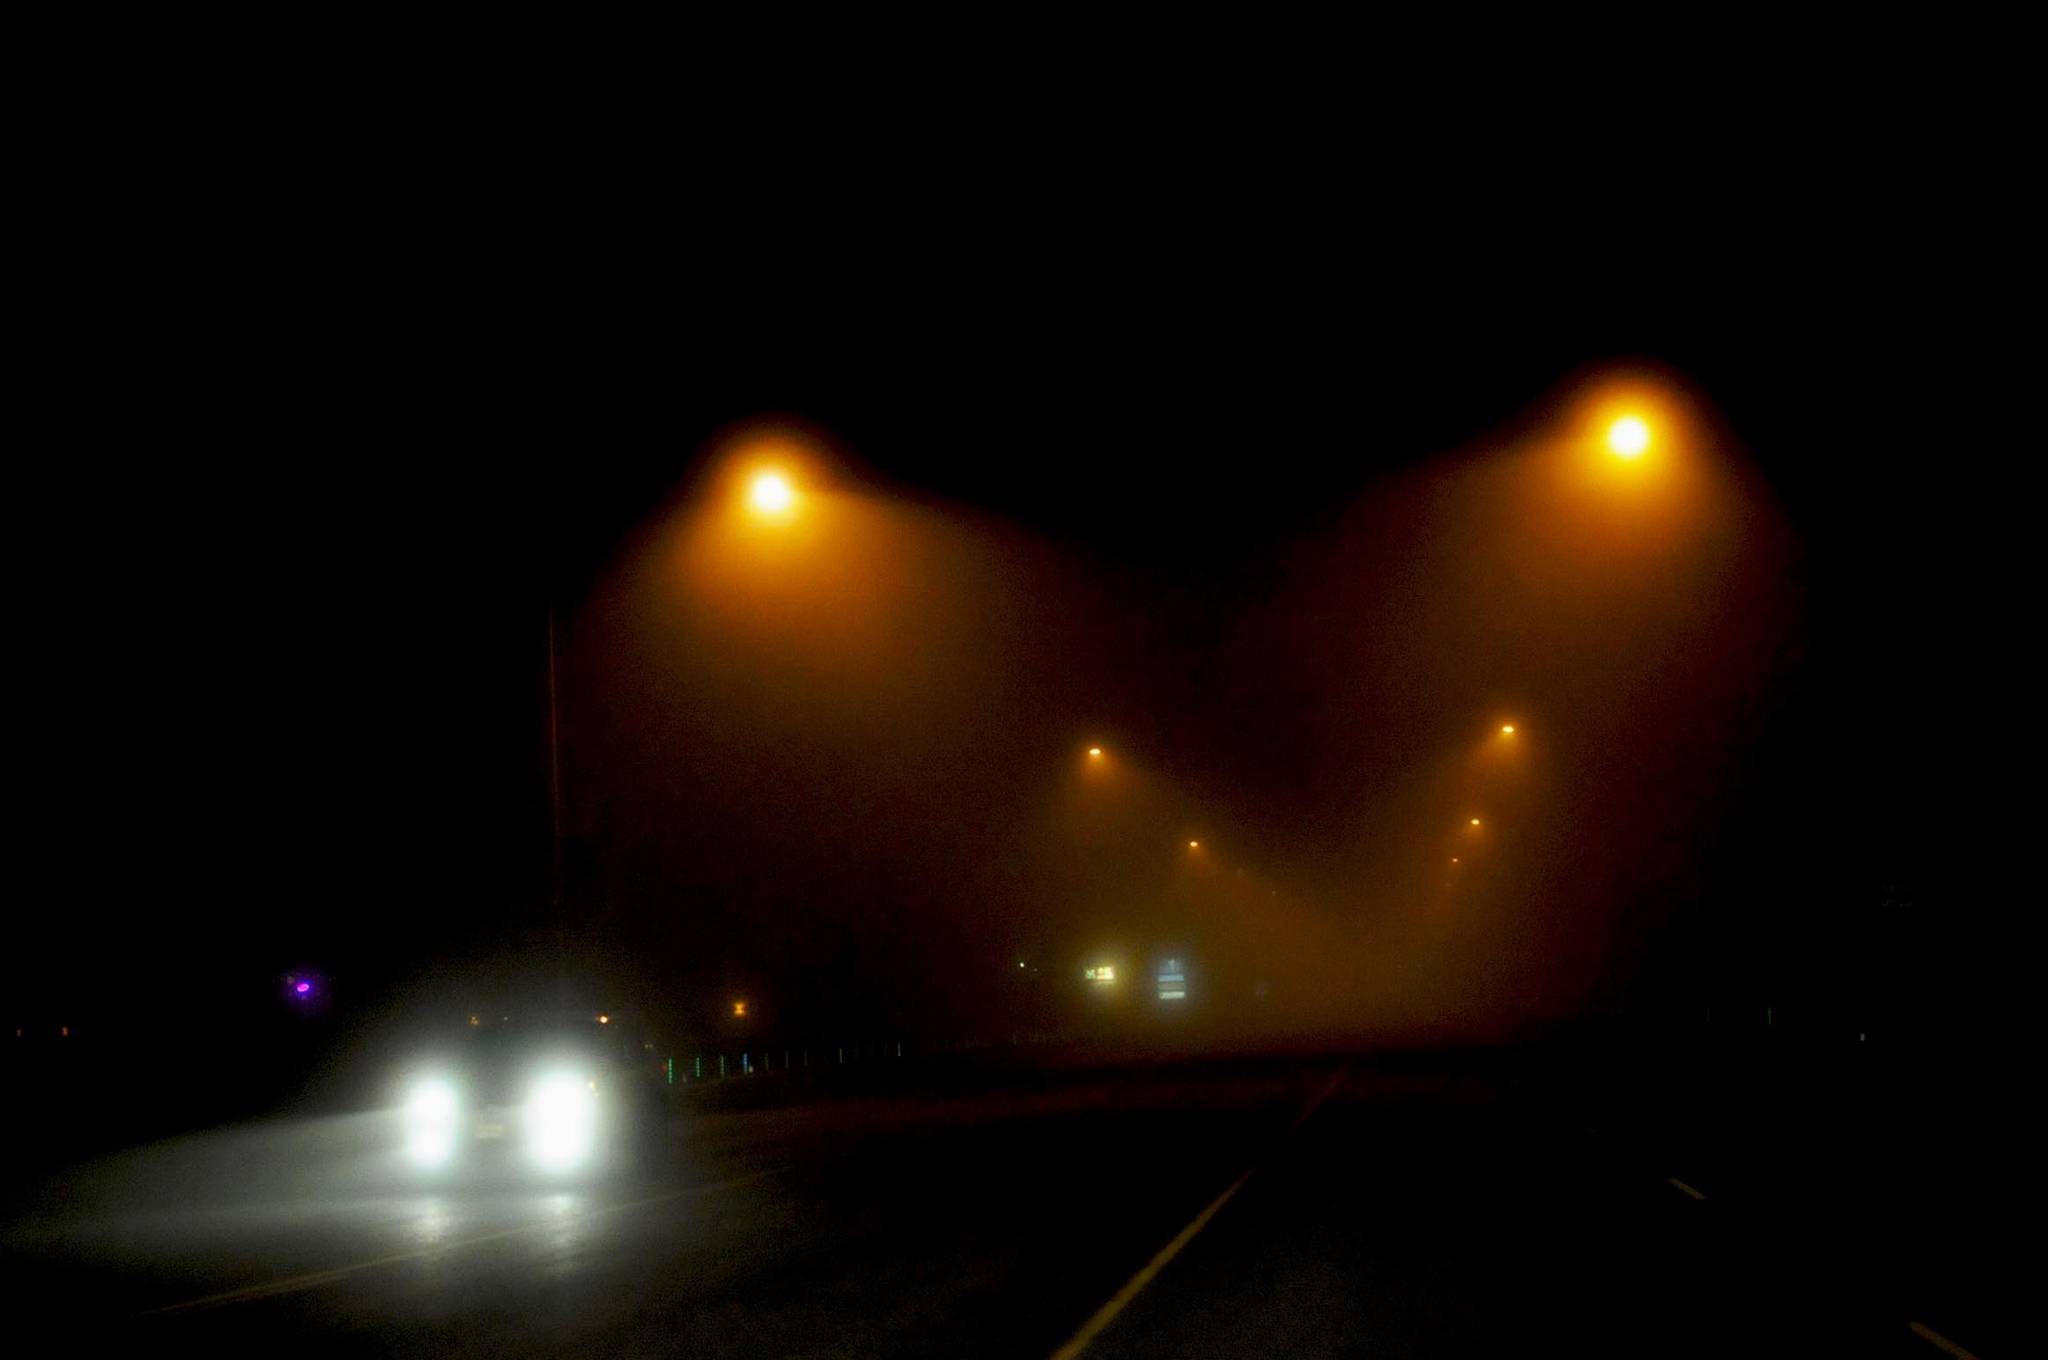 A car crosses the David E. Douthit Veterans Memorial Bridge over the Kenai River through dense fog on Tuesday, Oct. 31, 2017 in Soldotna, Alaska. A heavy fog rolled over the western Kenai Peninsula Tuesday evening, resulting in cancelled flights in and out of the Kenai Municipal Airport and ensconcing Halloween trick-or-treaters in an eerie mist colored orange or white by the streetlamps. By morning, the fog had thinned and the temperature dropped to the high 20s, with some fog predicted to continue in the morning and evening through Wednesday and Thursday, according to the National Weather Service. (Photo by Elizabeth Earl/Peninsula Clarion)